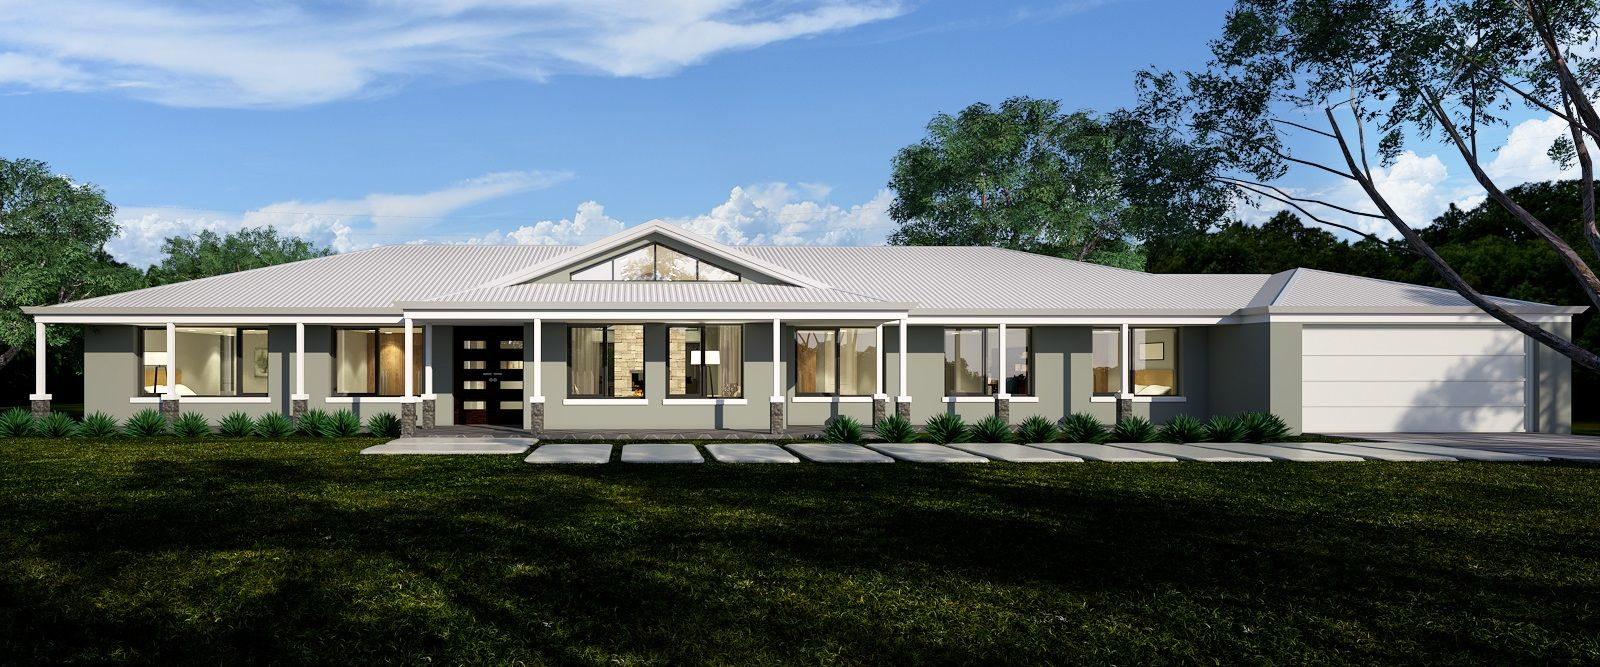 Farmhouse And Rural Home Designs Online Ranch Style Home